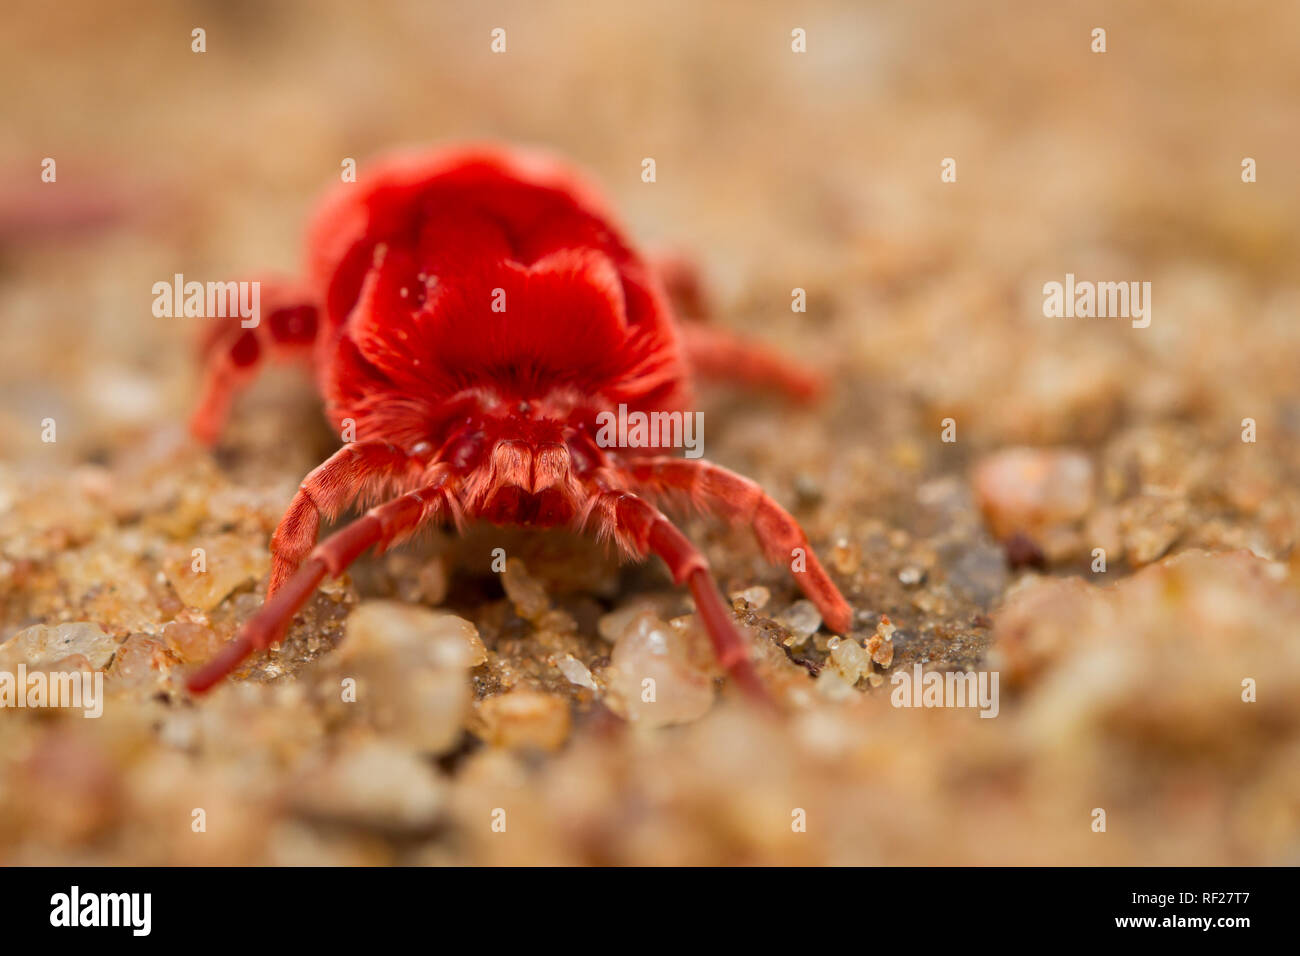 Adult red velvet mites, Dinothrombium spp, spend most of their time underground in burrows but come out after summer rains in Limpopo, South Africa - Stock Image